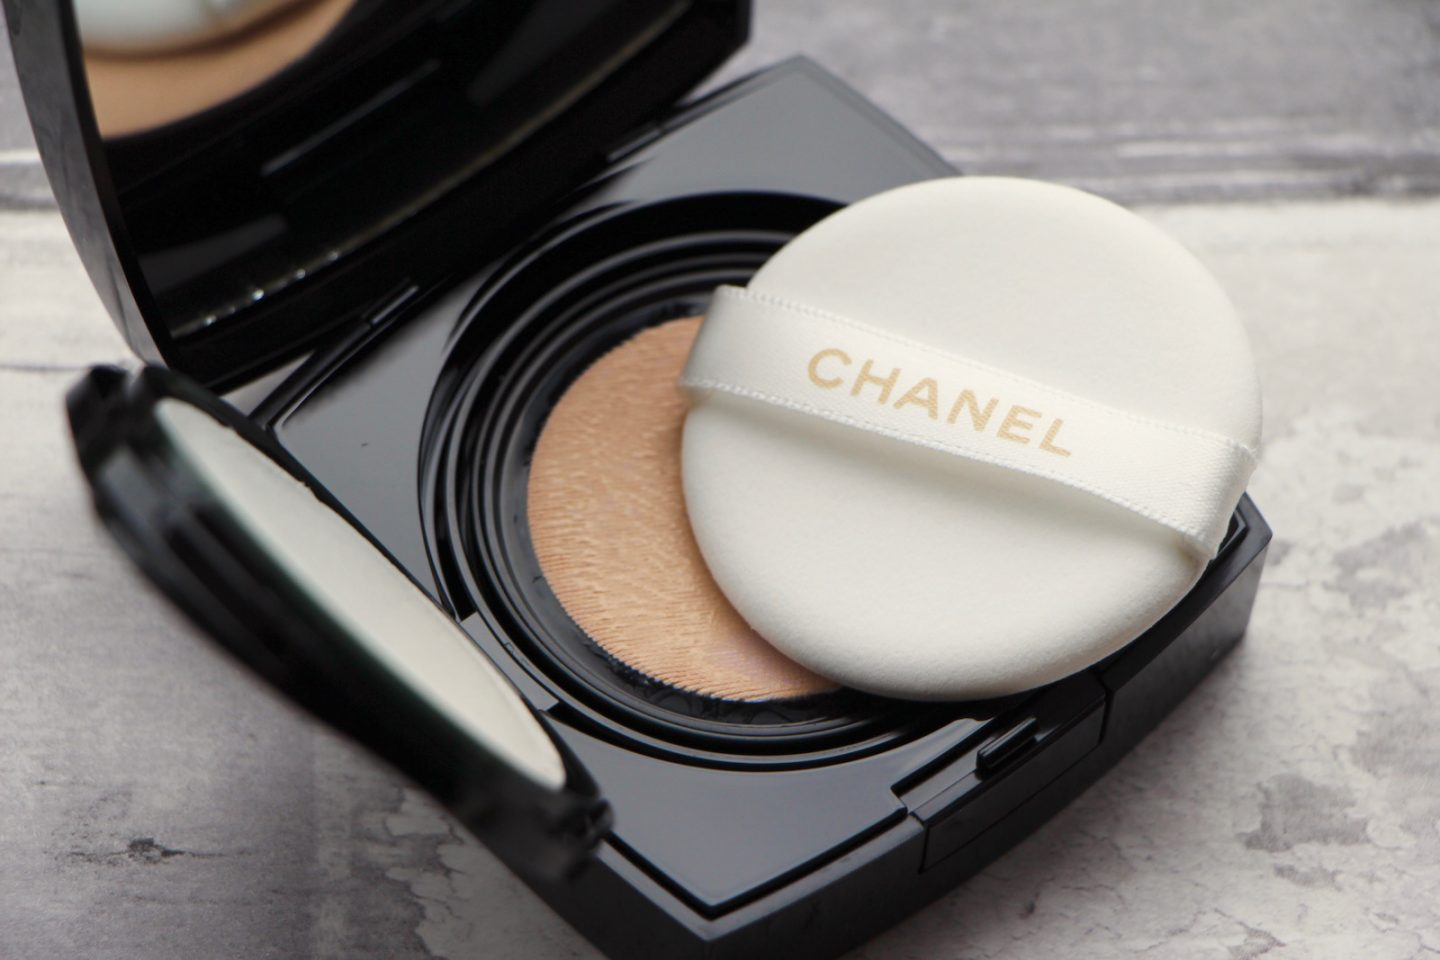 Chanel Les Beiges Gel Touch Cushion foundation review